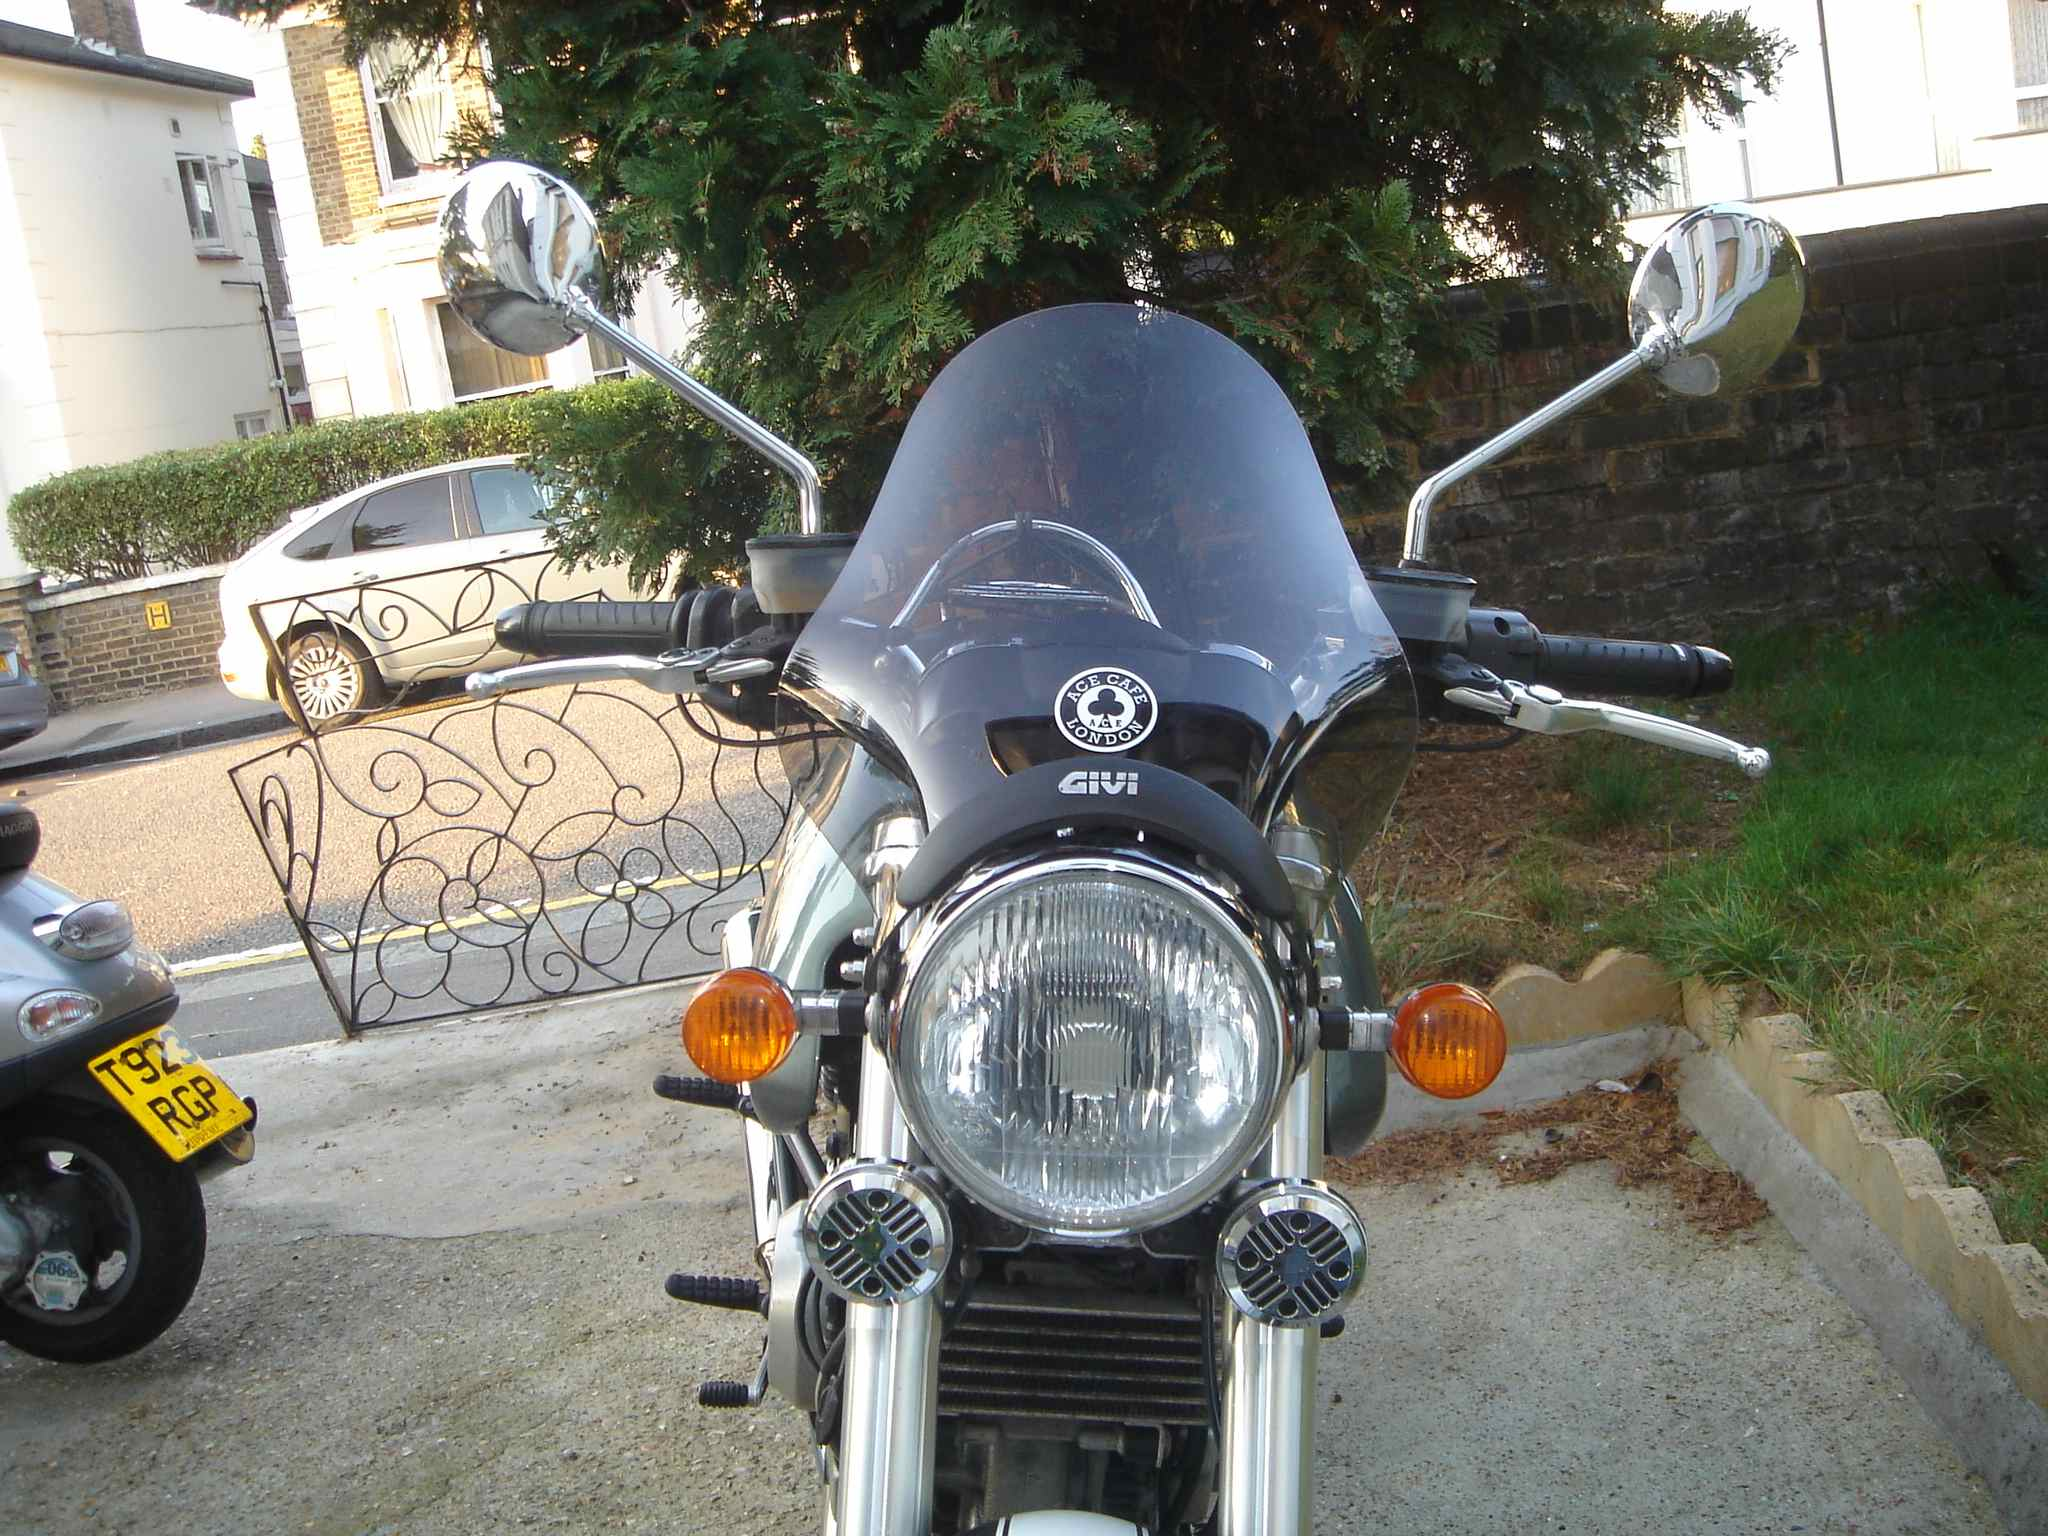 givi a200 for a gt1000 - comments  - ducati ms